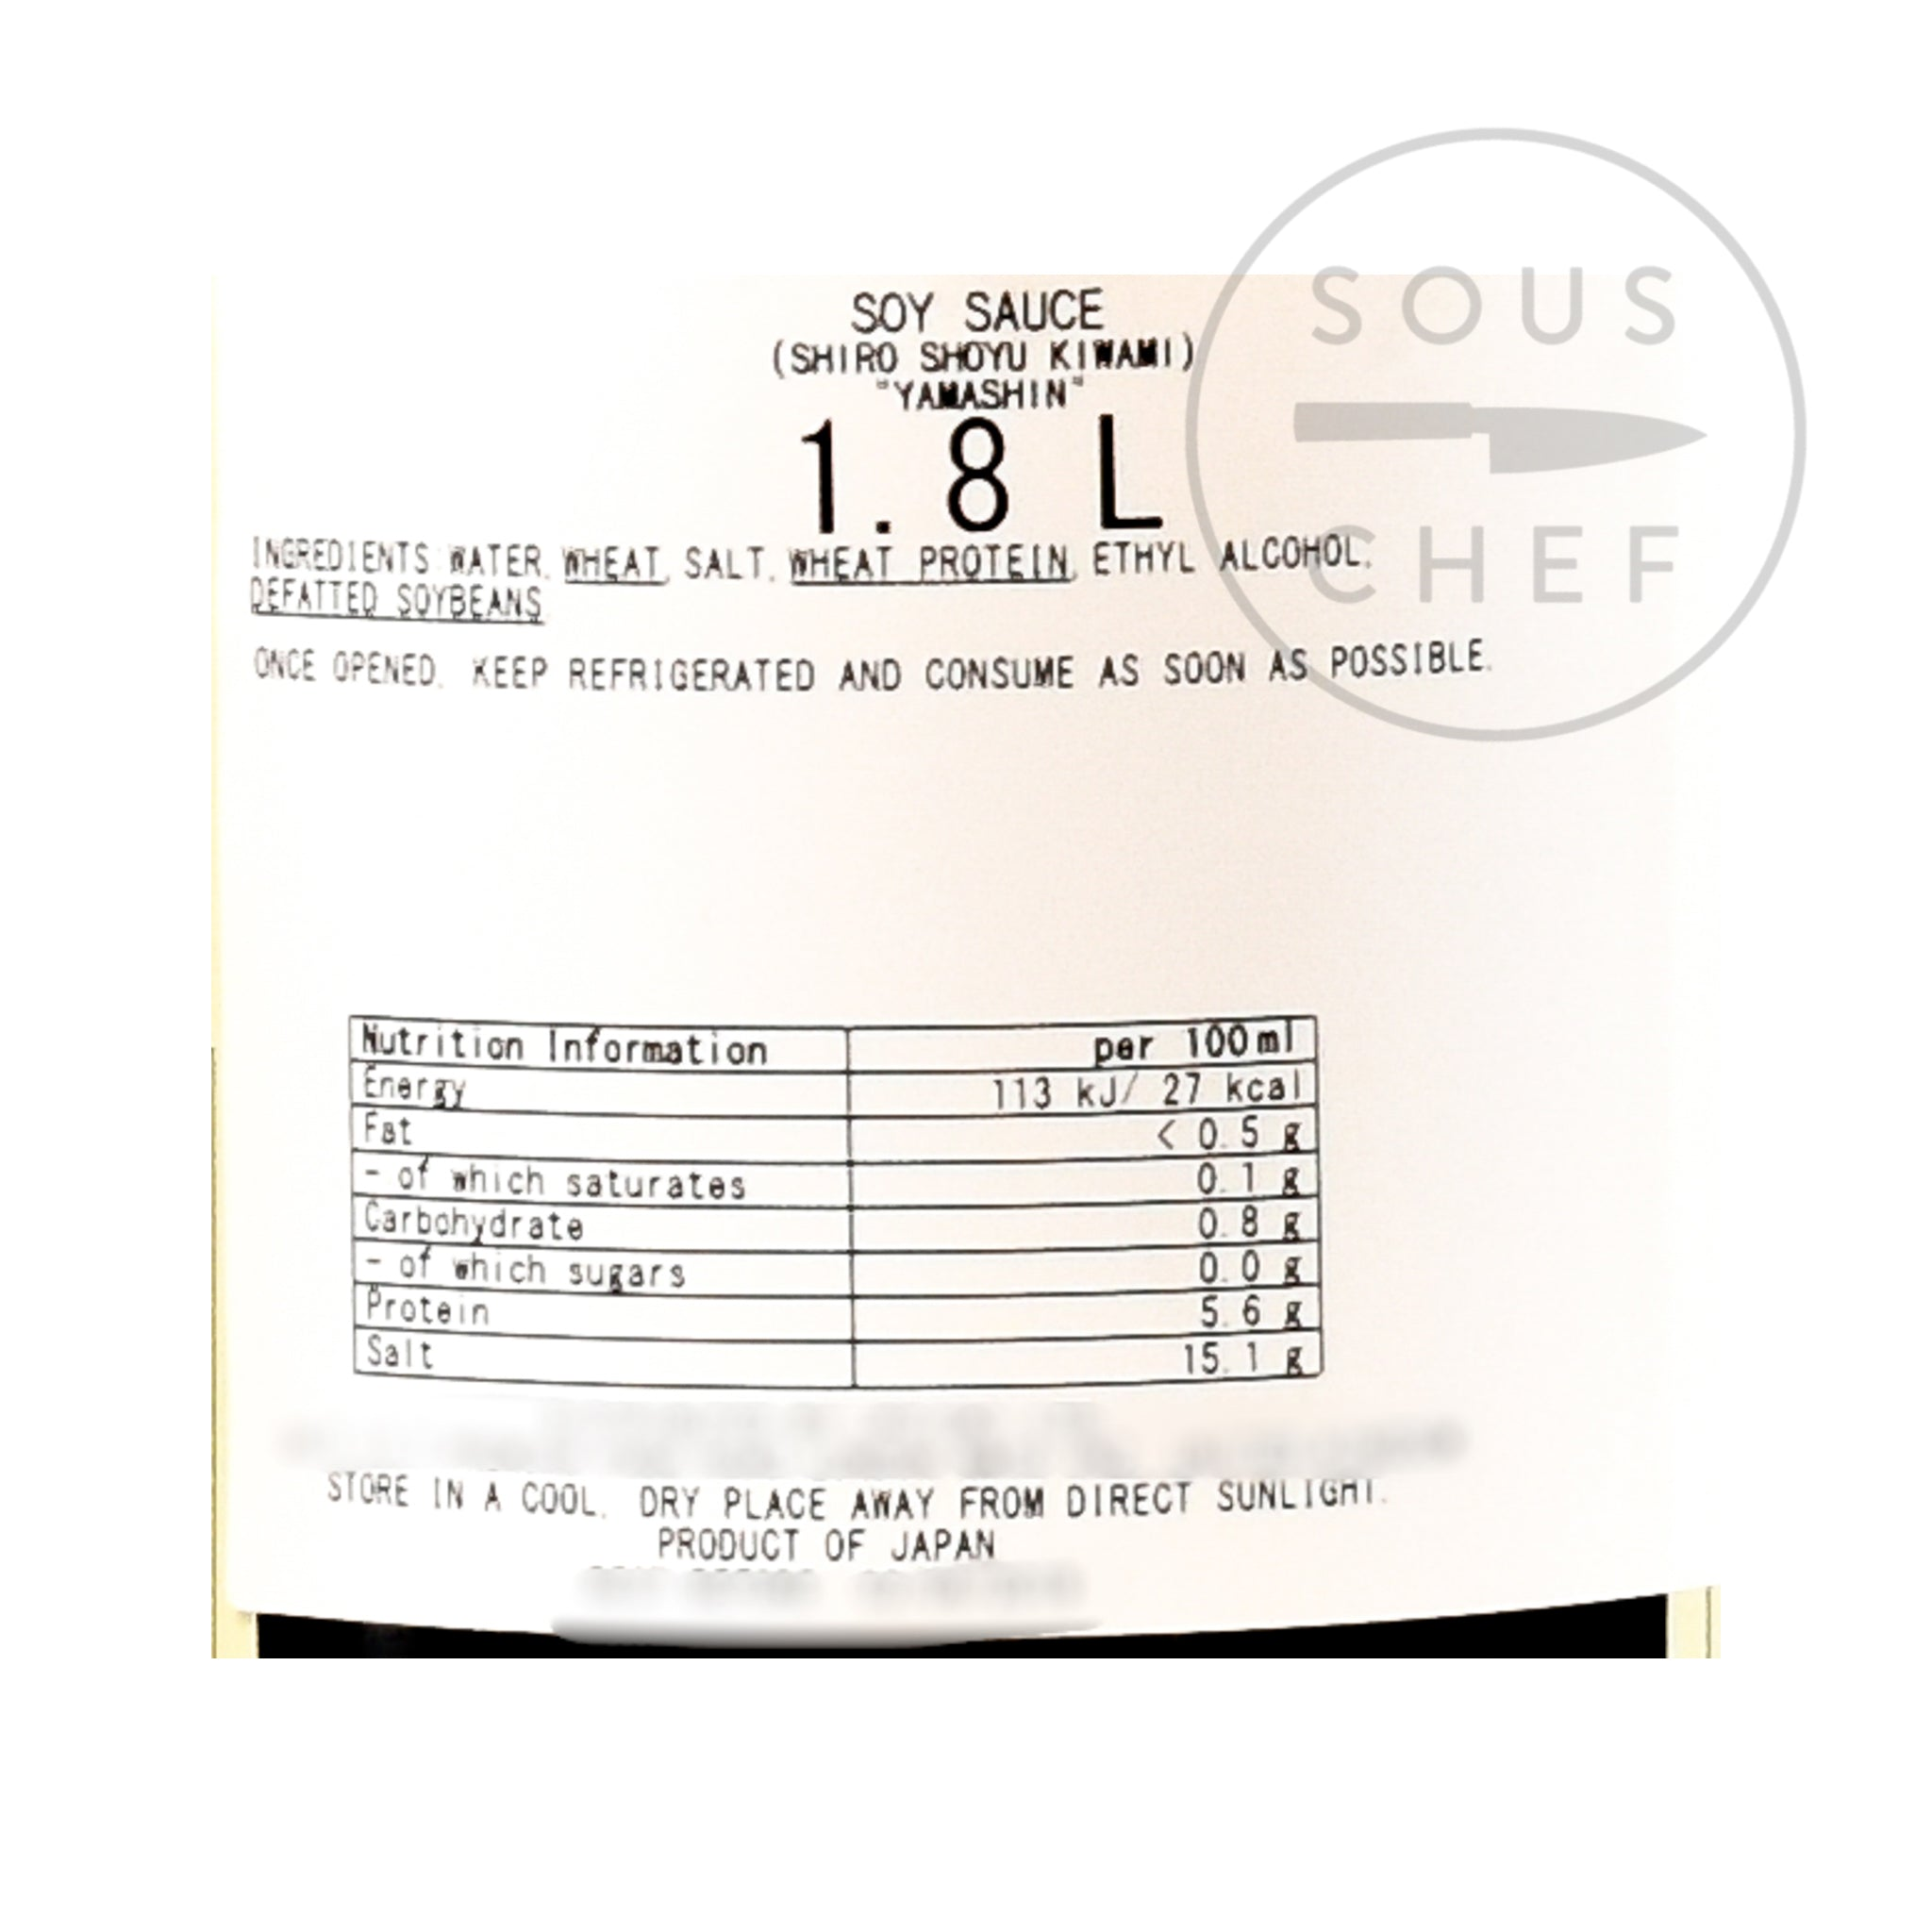 White Soy Sauce - Yamashin Shiro Shoyu 1.8l nutritional information ingredients